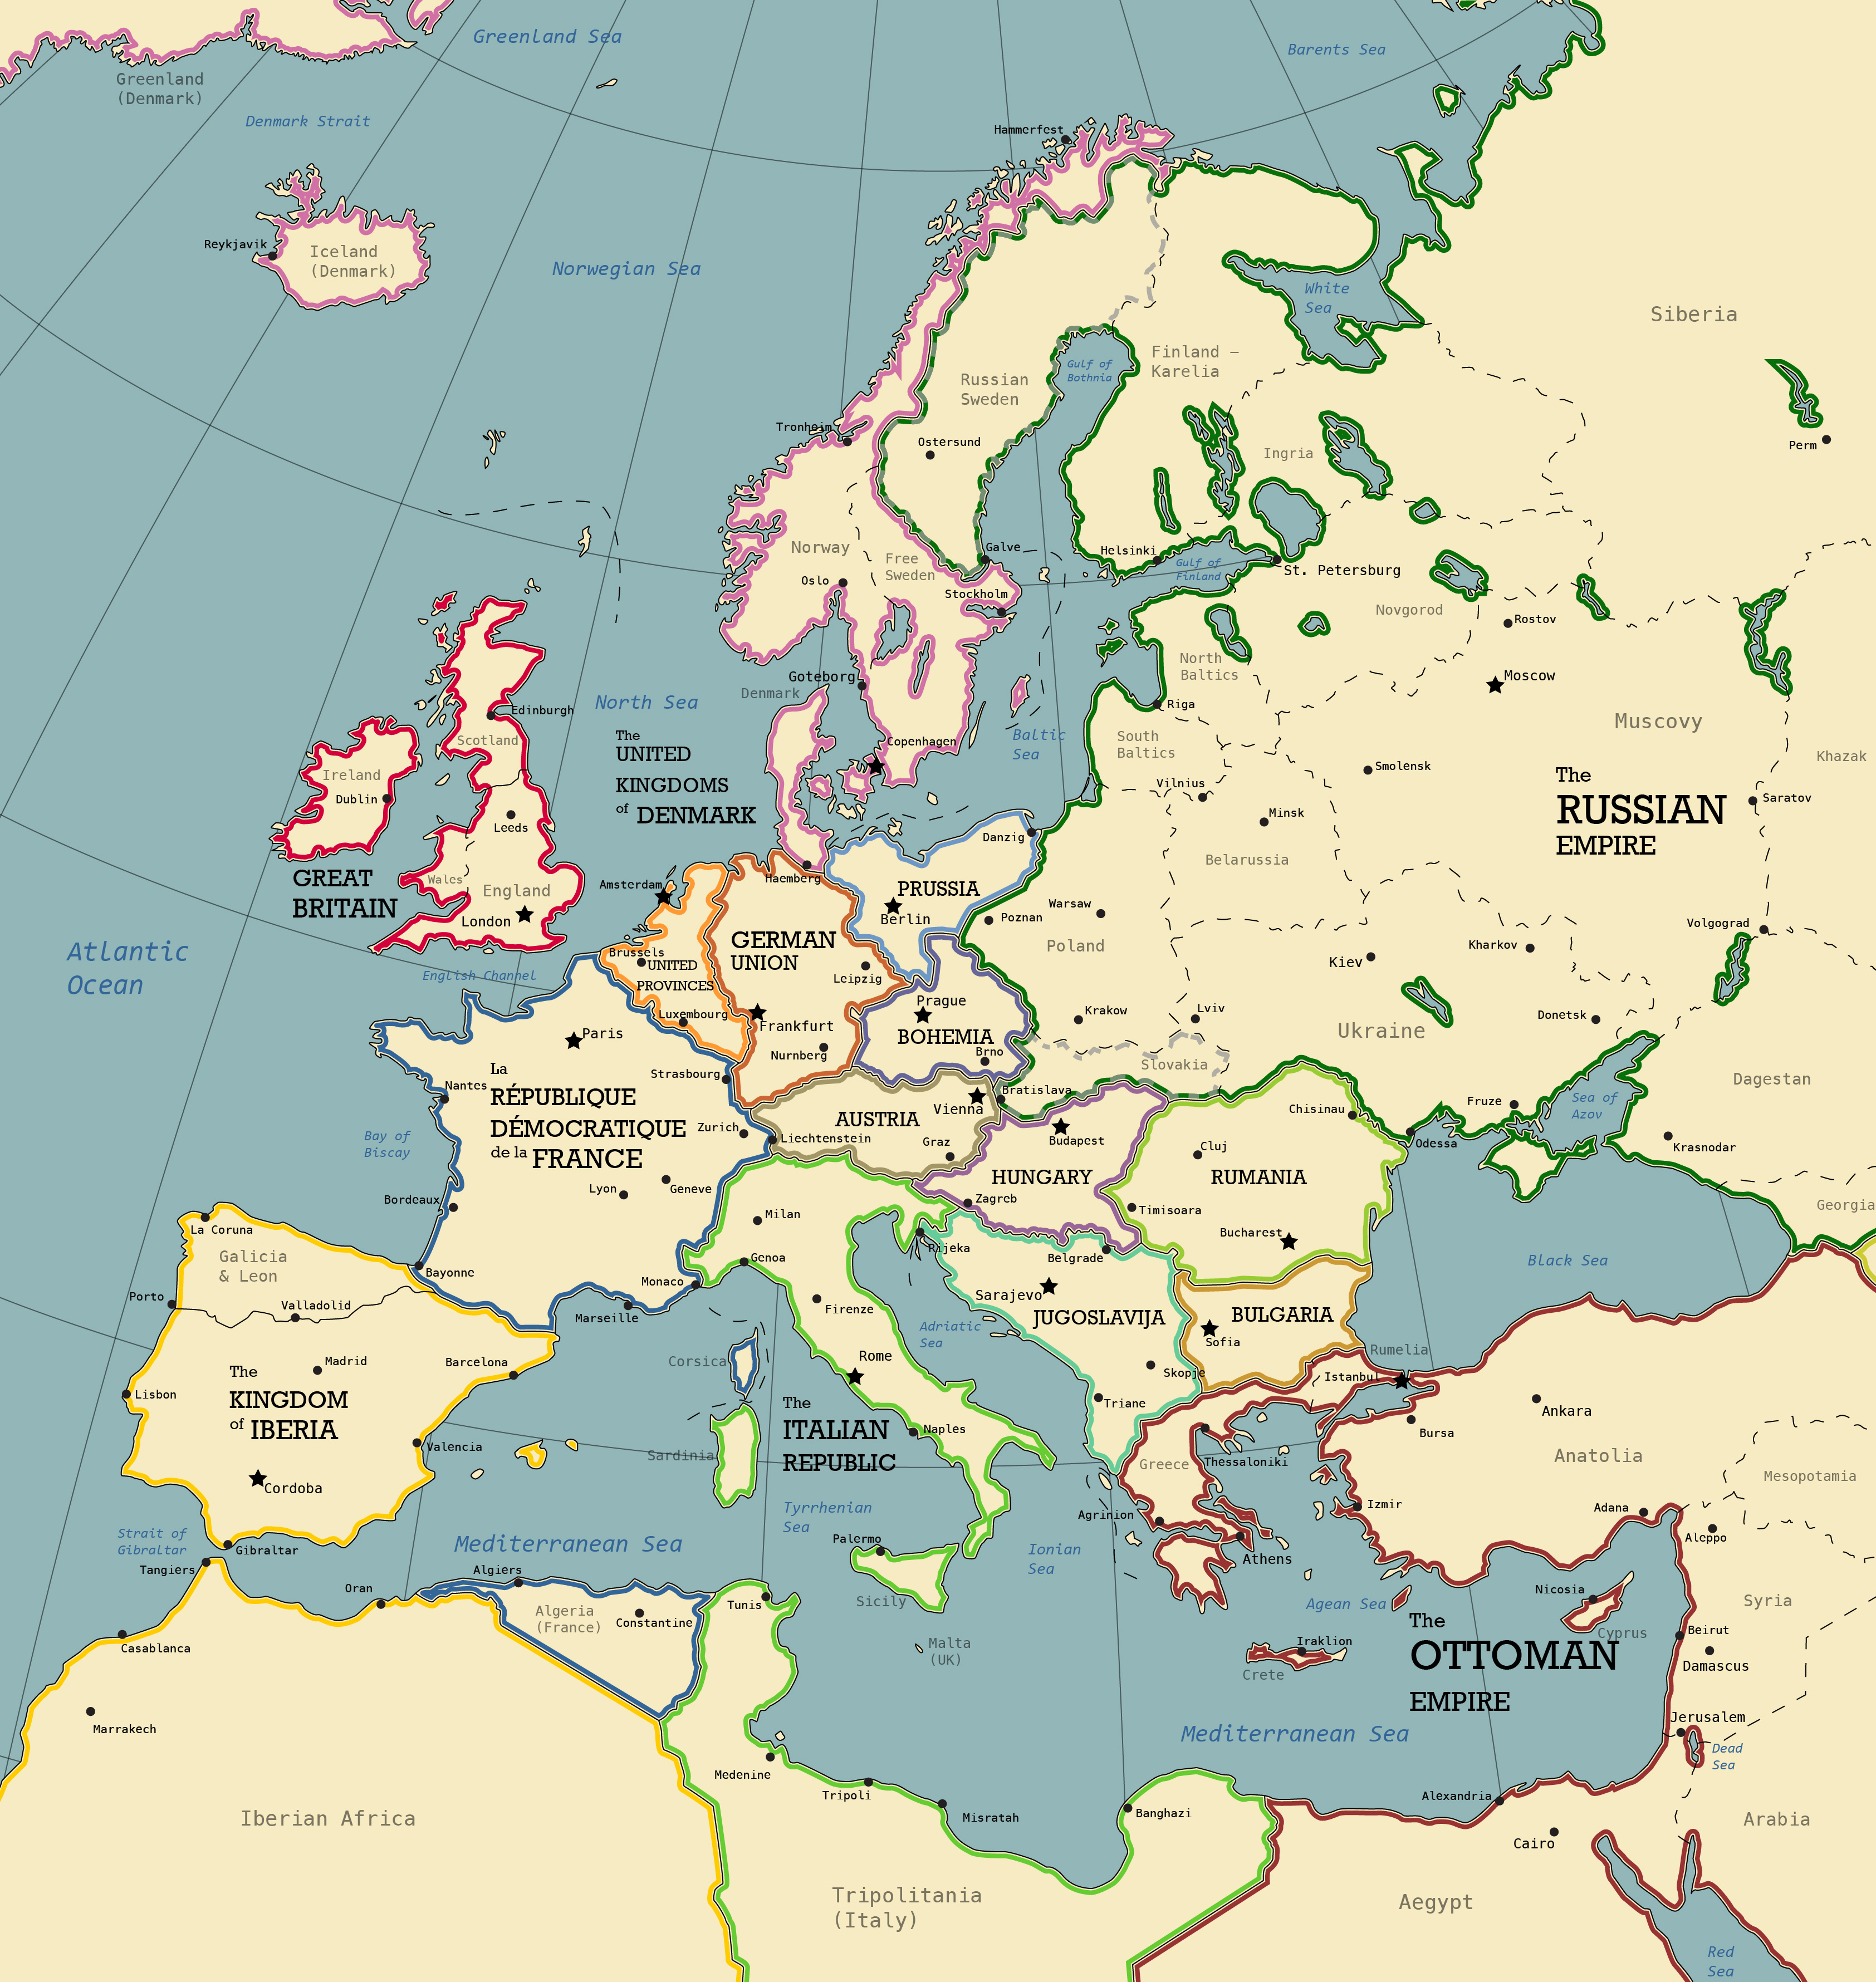 The european continent in the year 1928 ad by spartan 127 on the european continent in the year 1928 ad by spartan 127 gumiabroncs Image collections